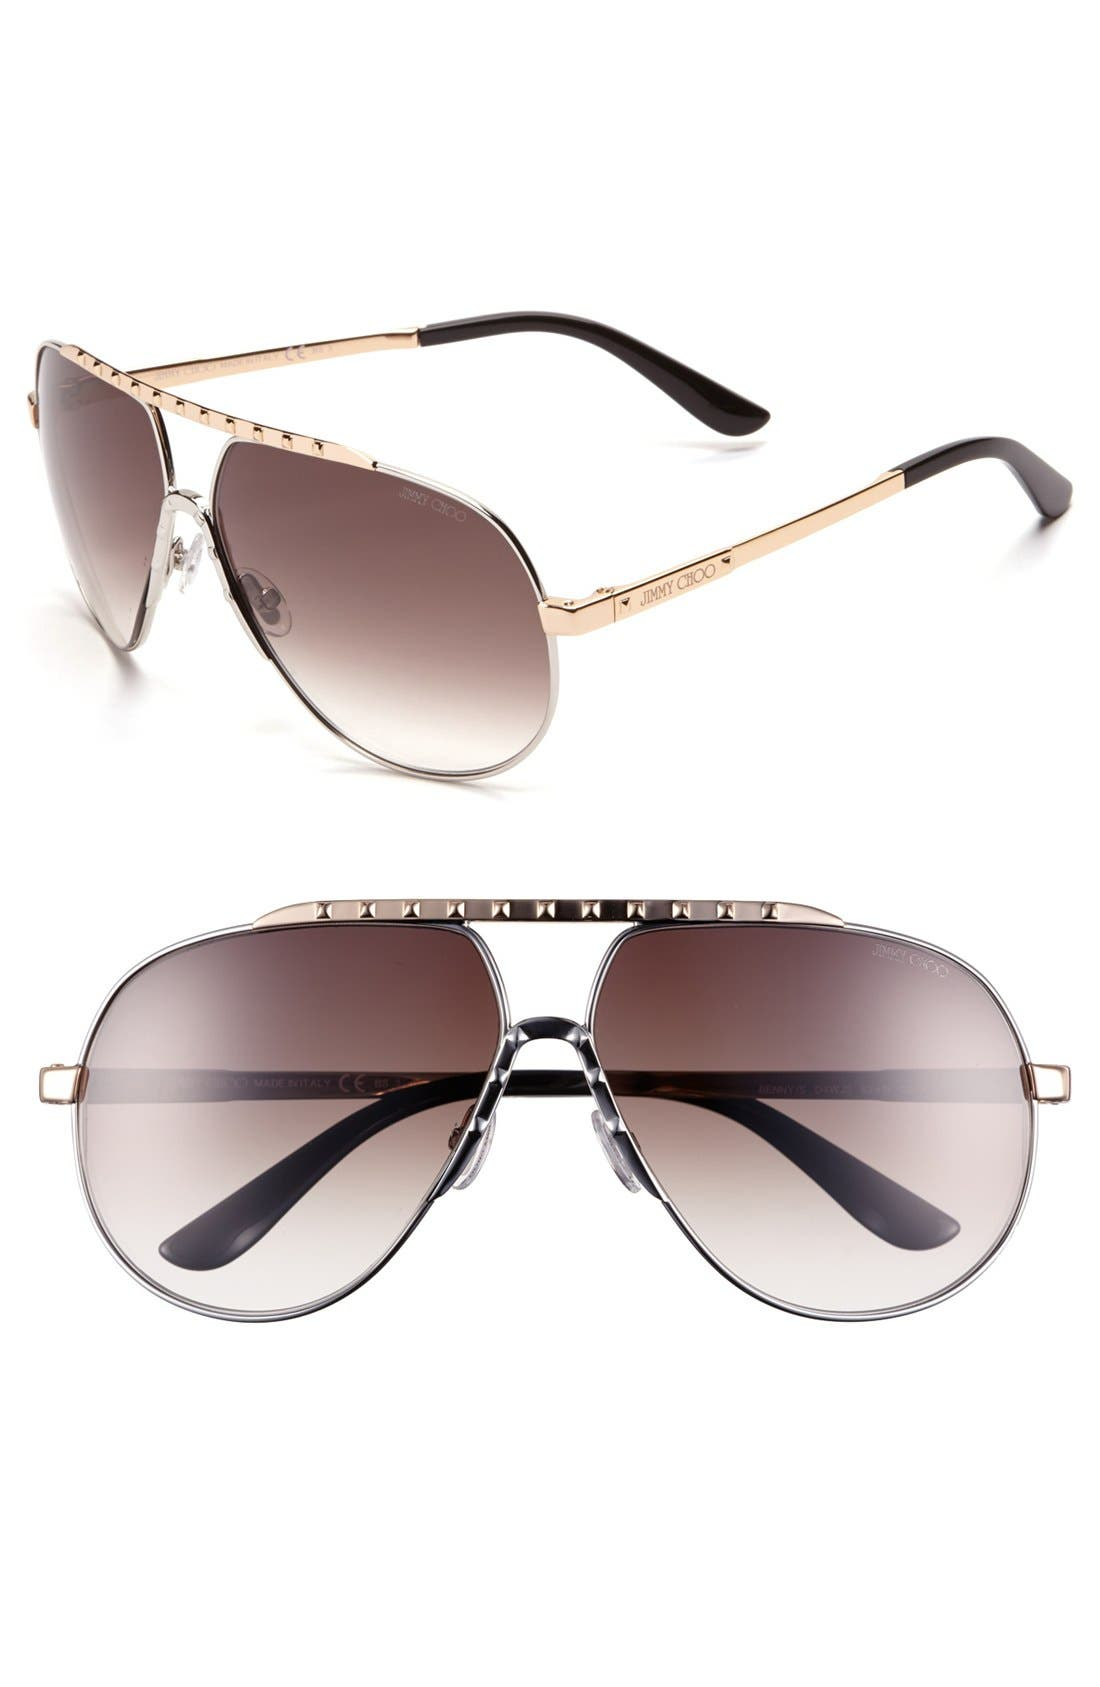 Alternate Image 1 Selected - Jimmy Choo 62mm Stainless Steel Aviator Sunglasses